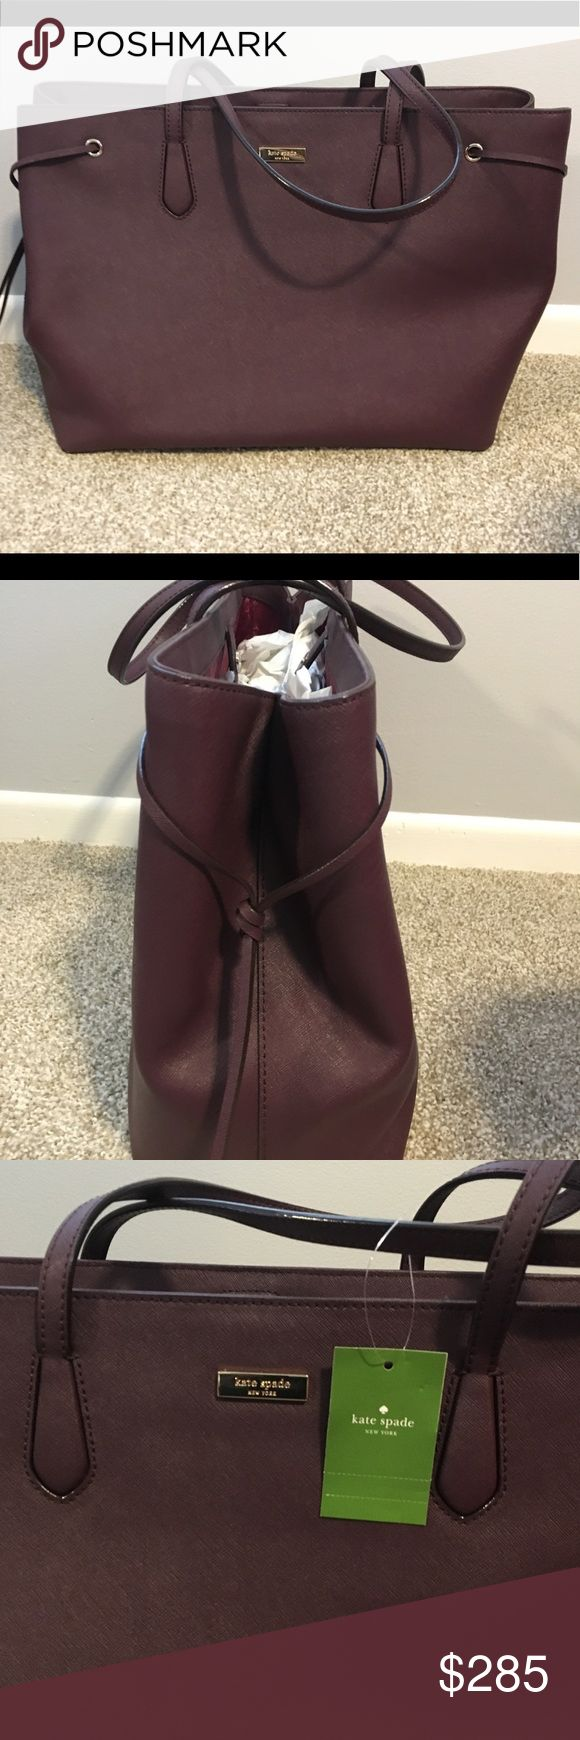 BRAND NEW Kate Spade handbag 💥SALE💥 this is a beautiful purple/burgundy color. Simple and classy style. NWT kate spade Bags Shoulder Bags